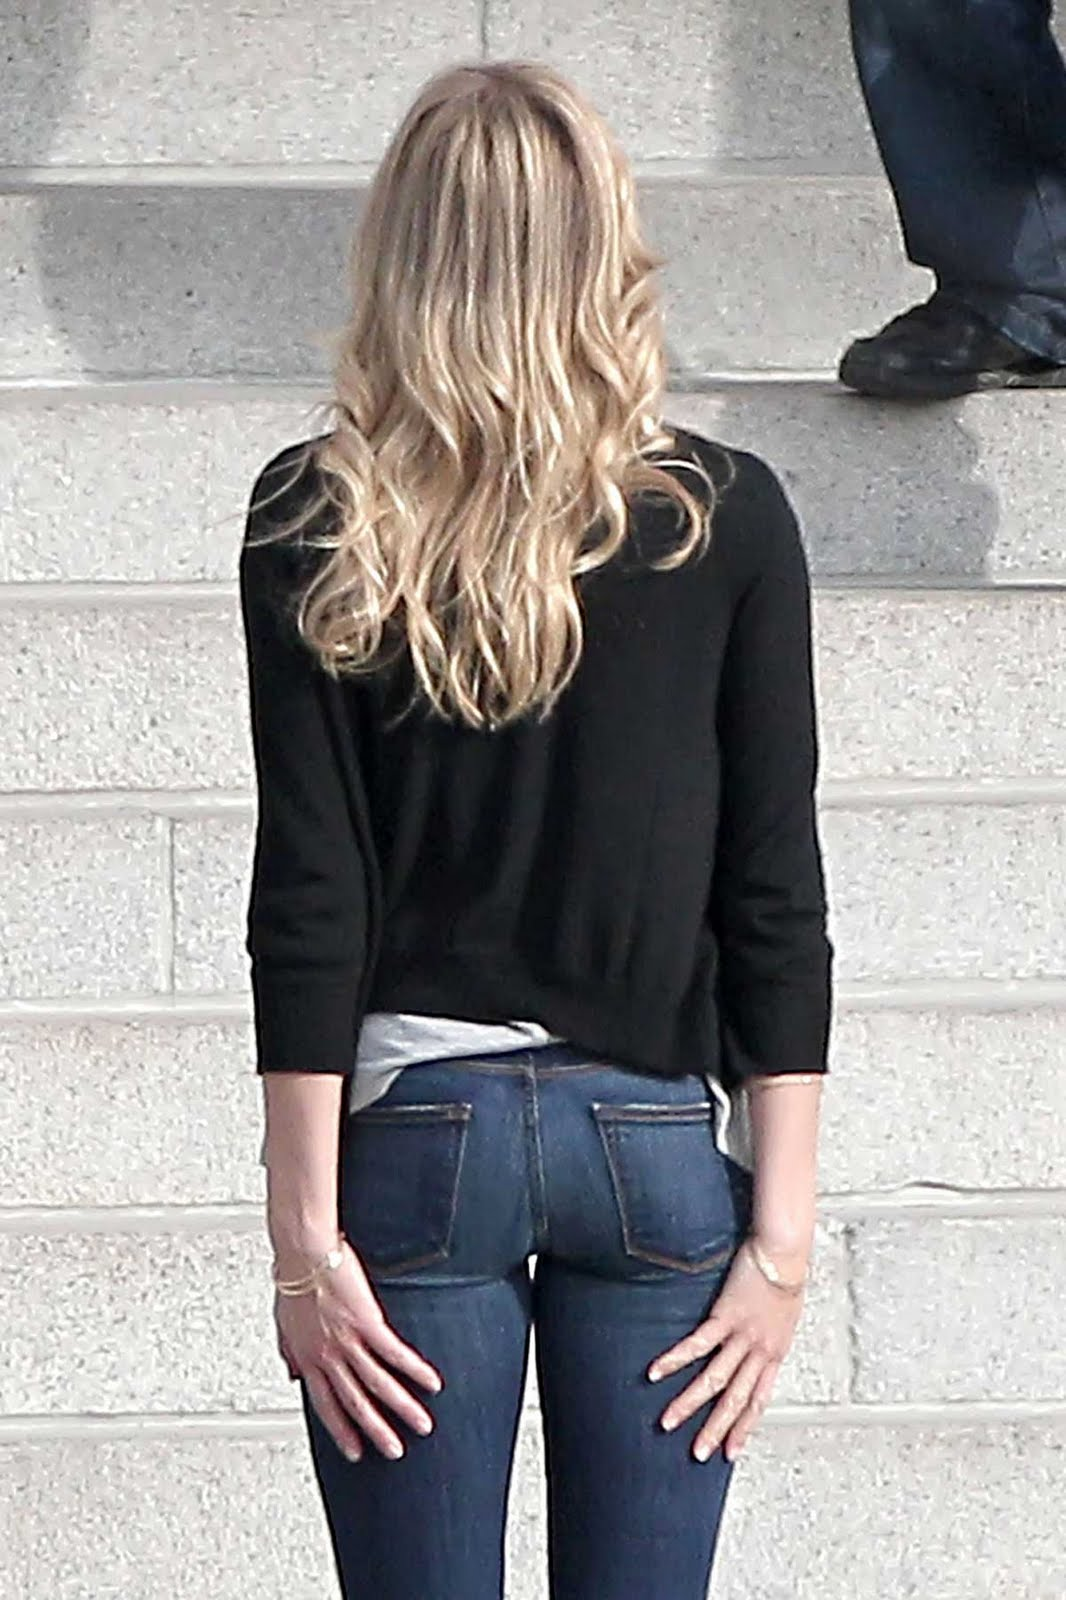 Celebrity bums in jeans